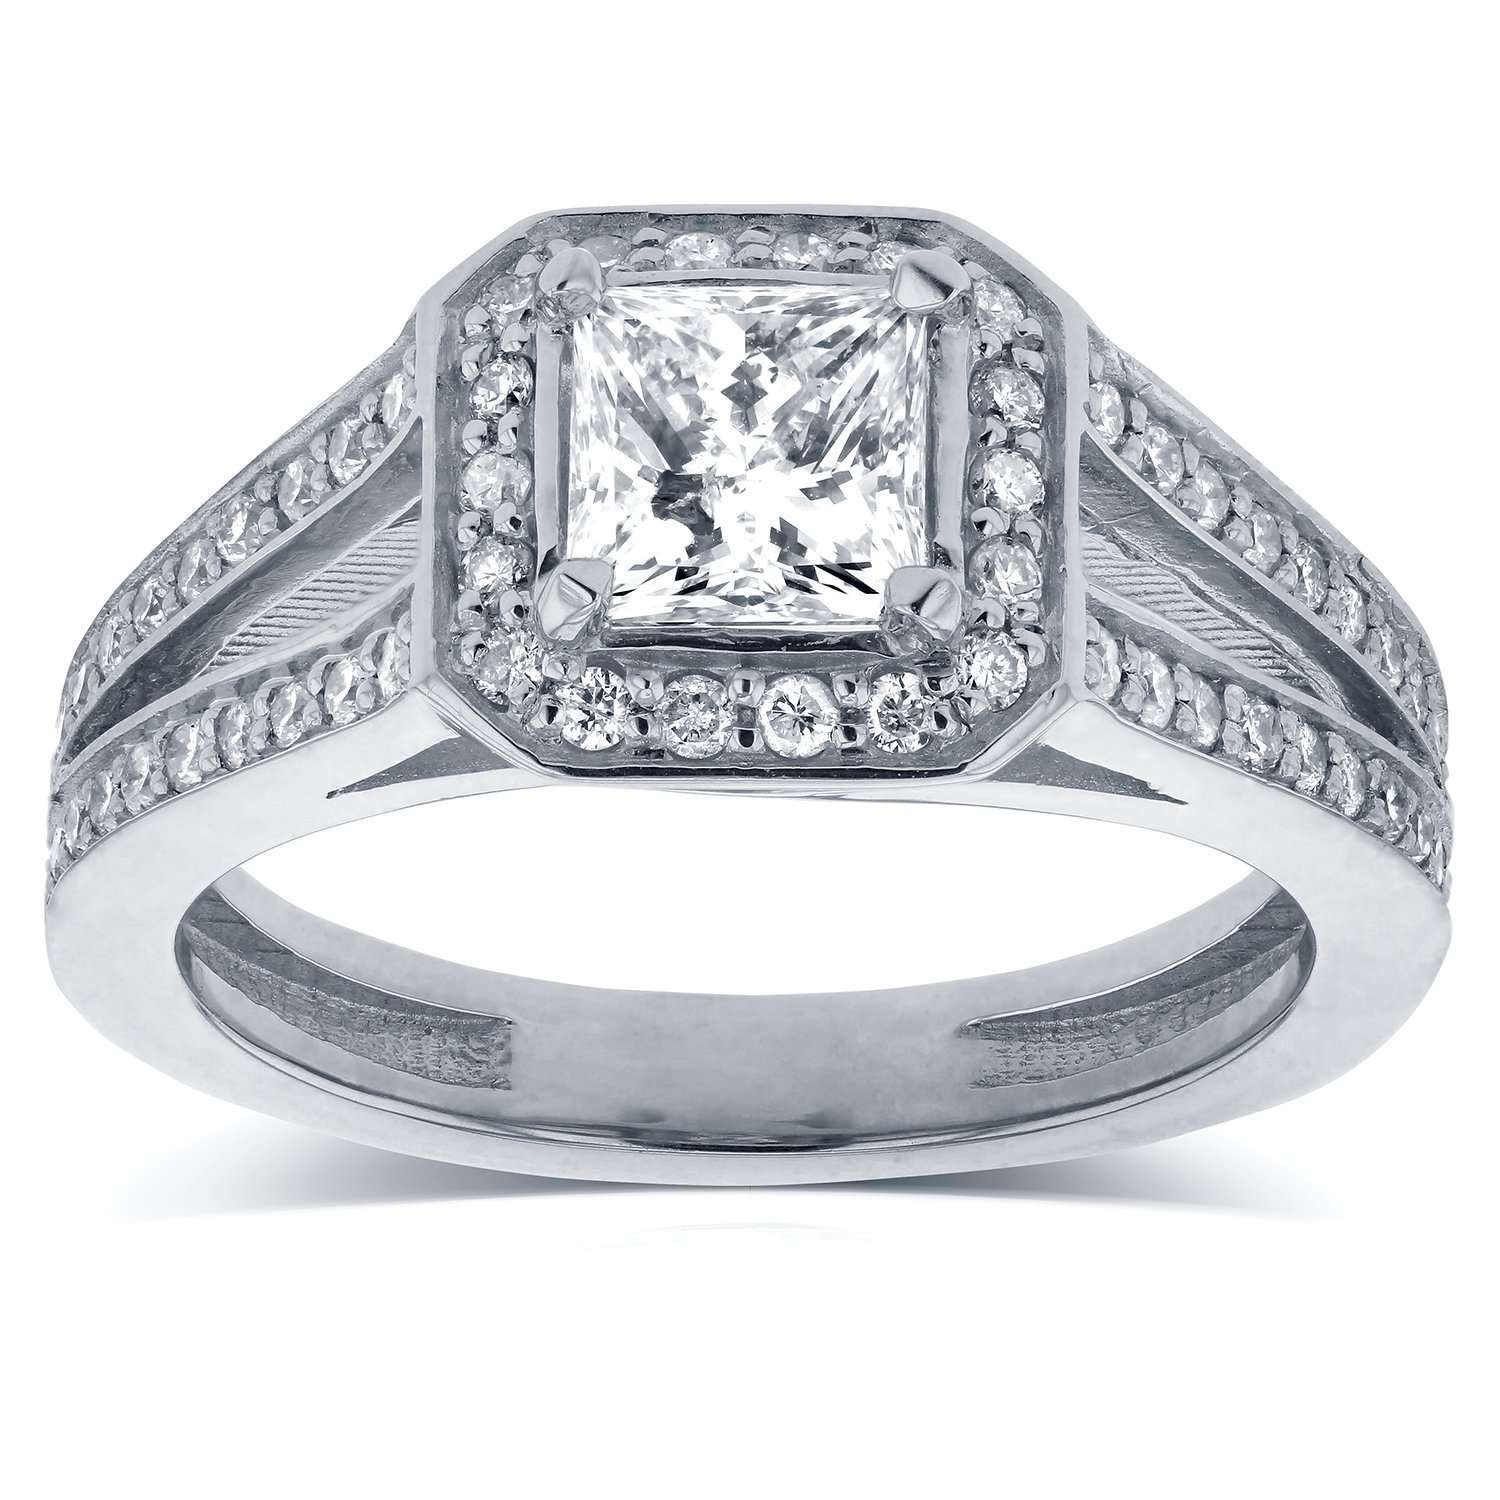 Best Princess Cut Diamond Halo Engagement Ring 1 1/8 CTW in 14k White Gold - 7